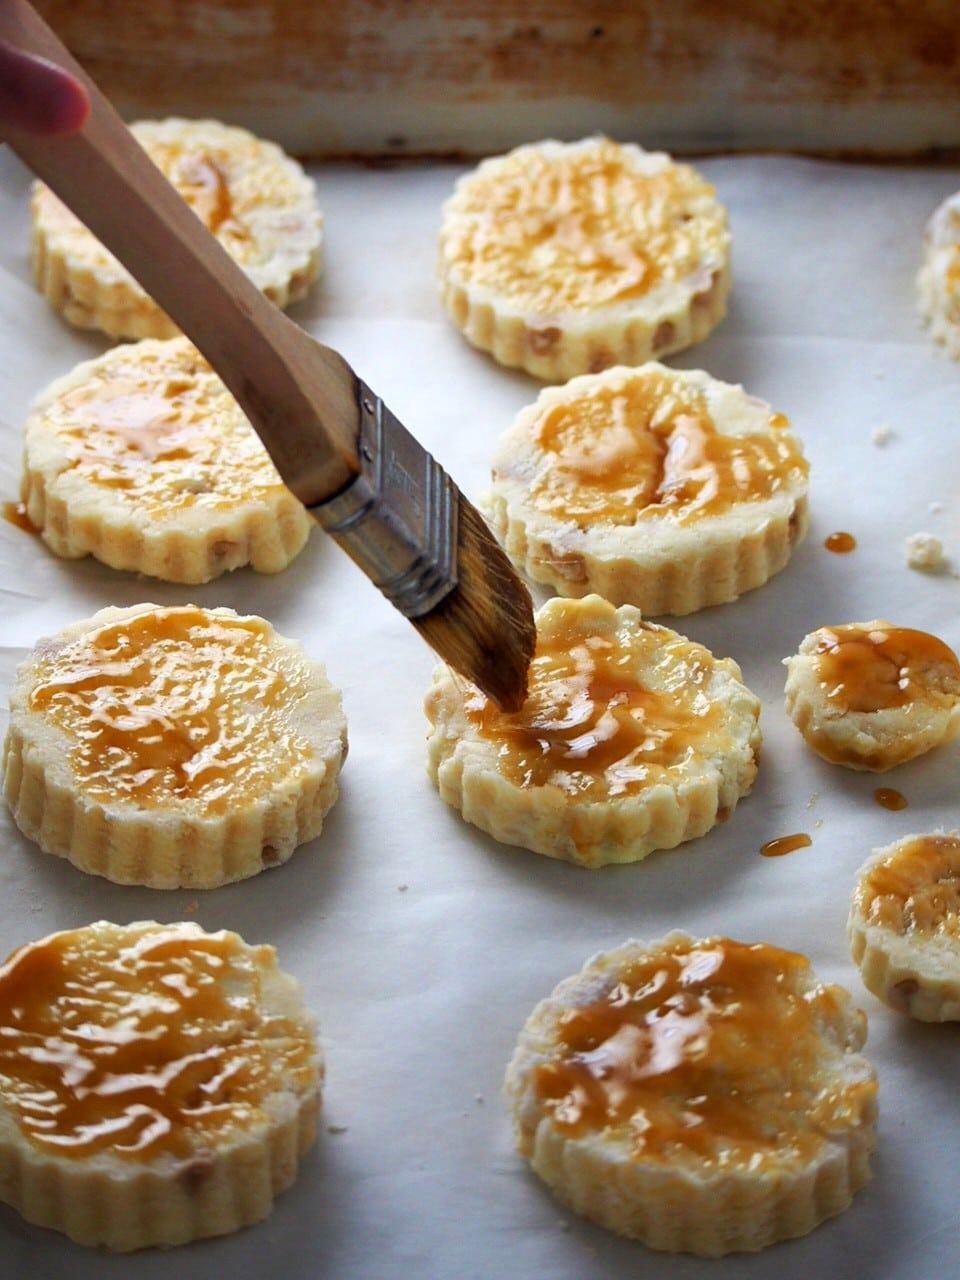 Brushing caramel sauce on the scones pastry.